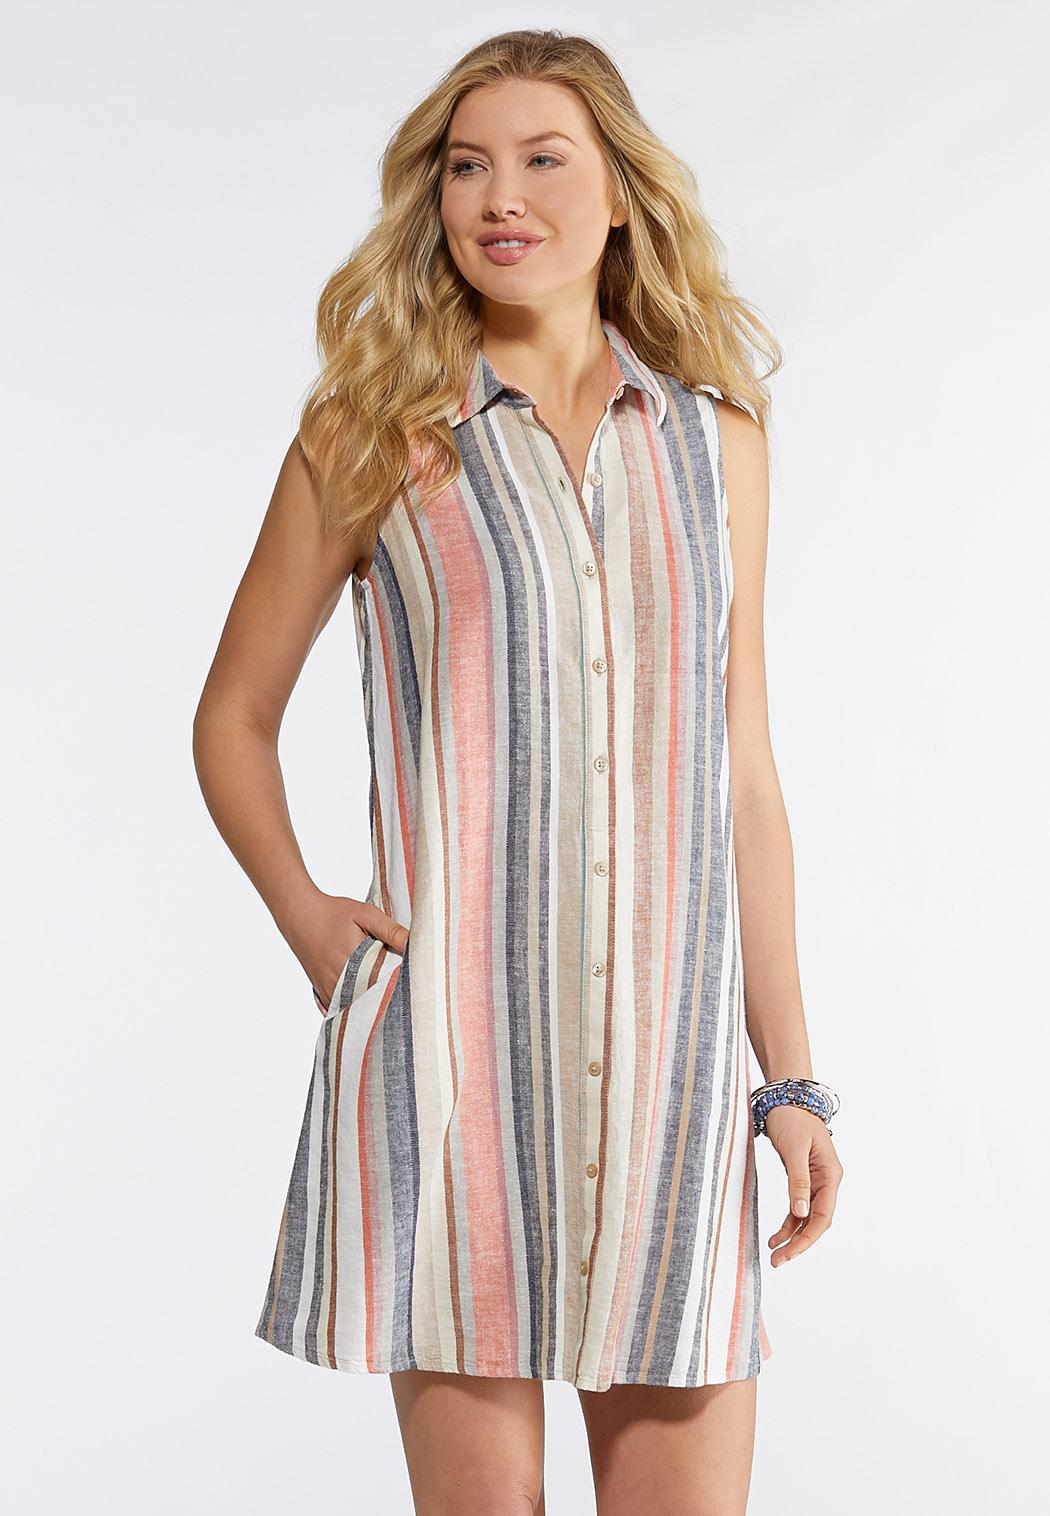 Plus Size Stripe Linen Shirt Dress Shirt Dress Cato Fashions